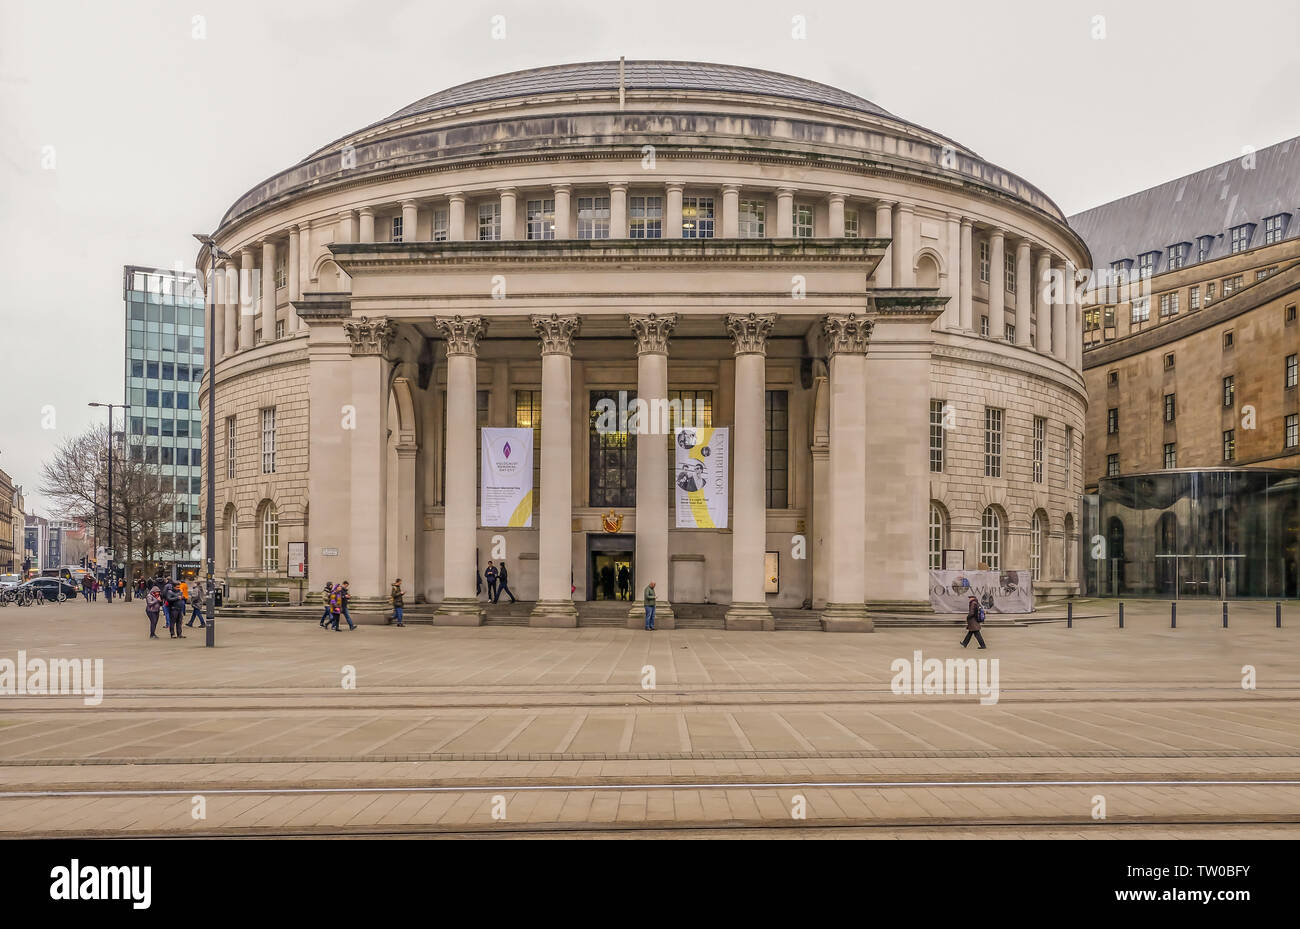 Picadilly, Manchester, UK - January 19, 2019: Central Library iconic round building with people walking around the area. - Stock Image